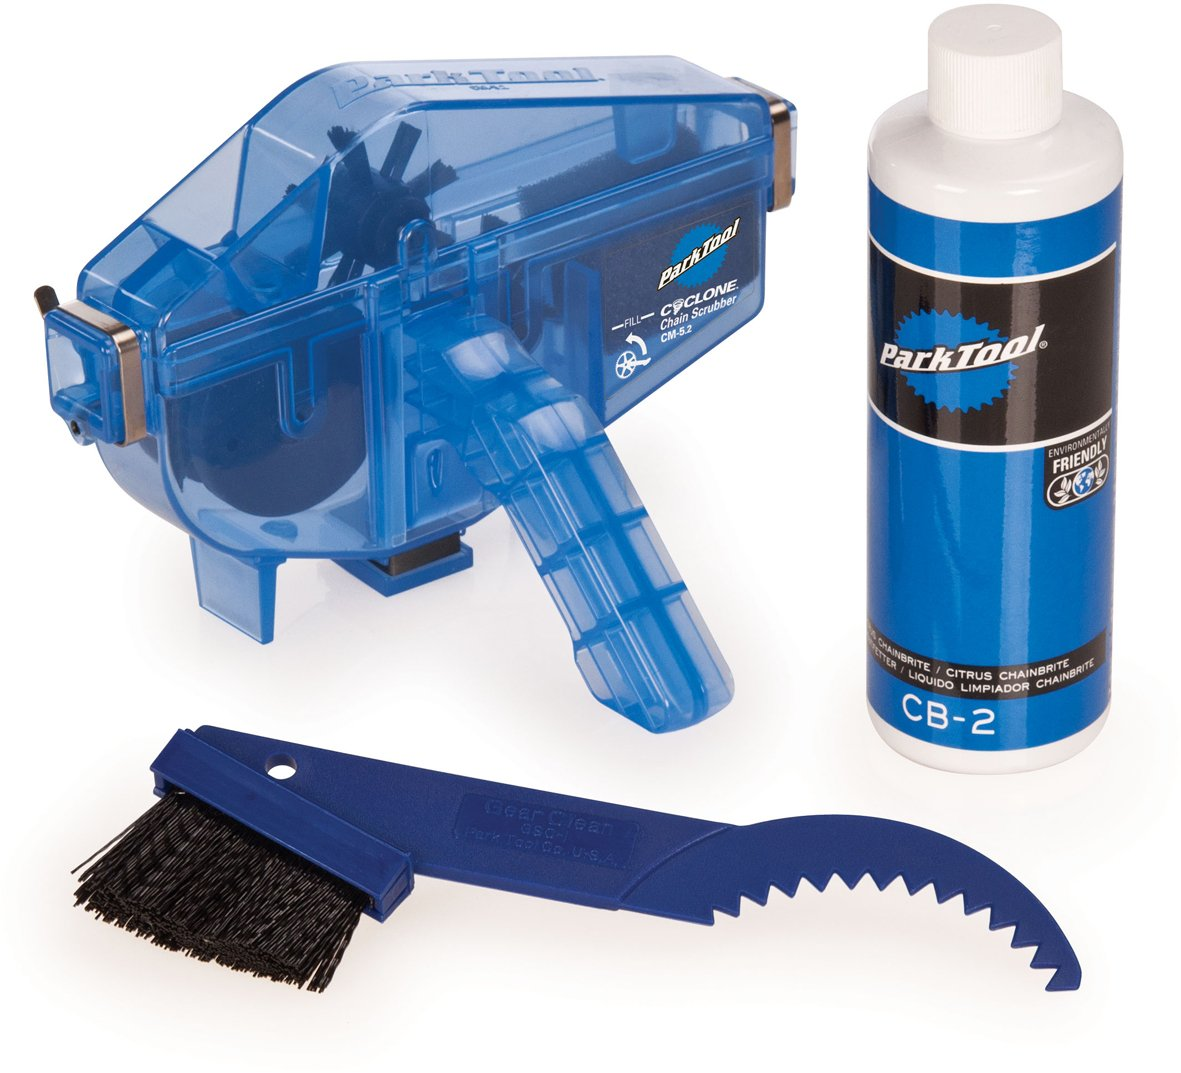 Park Tool CG-2.3 Chain Gang Chain Cleaning System Blue, One Size by Park Tool